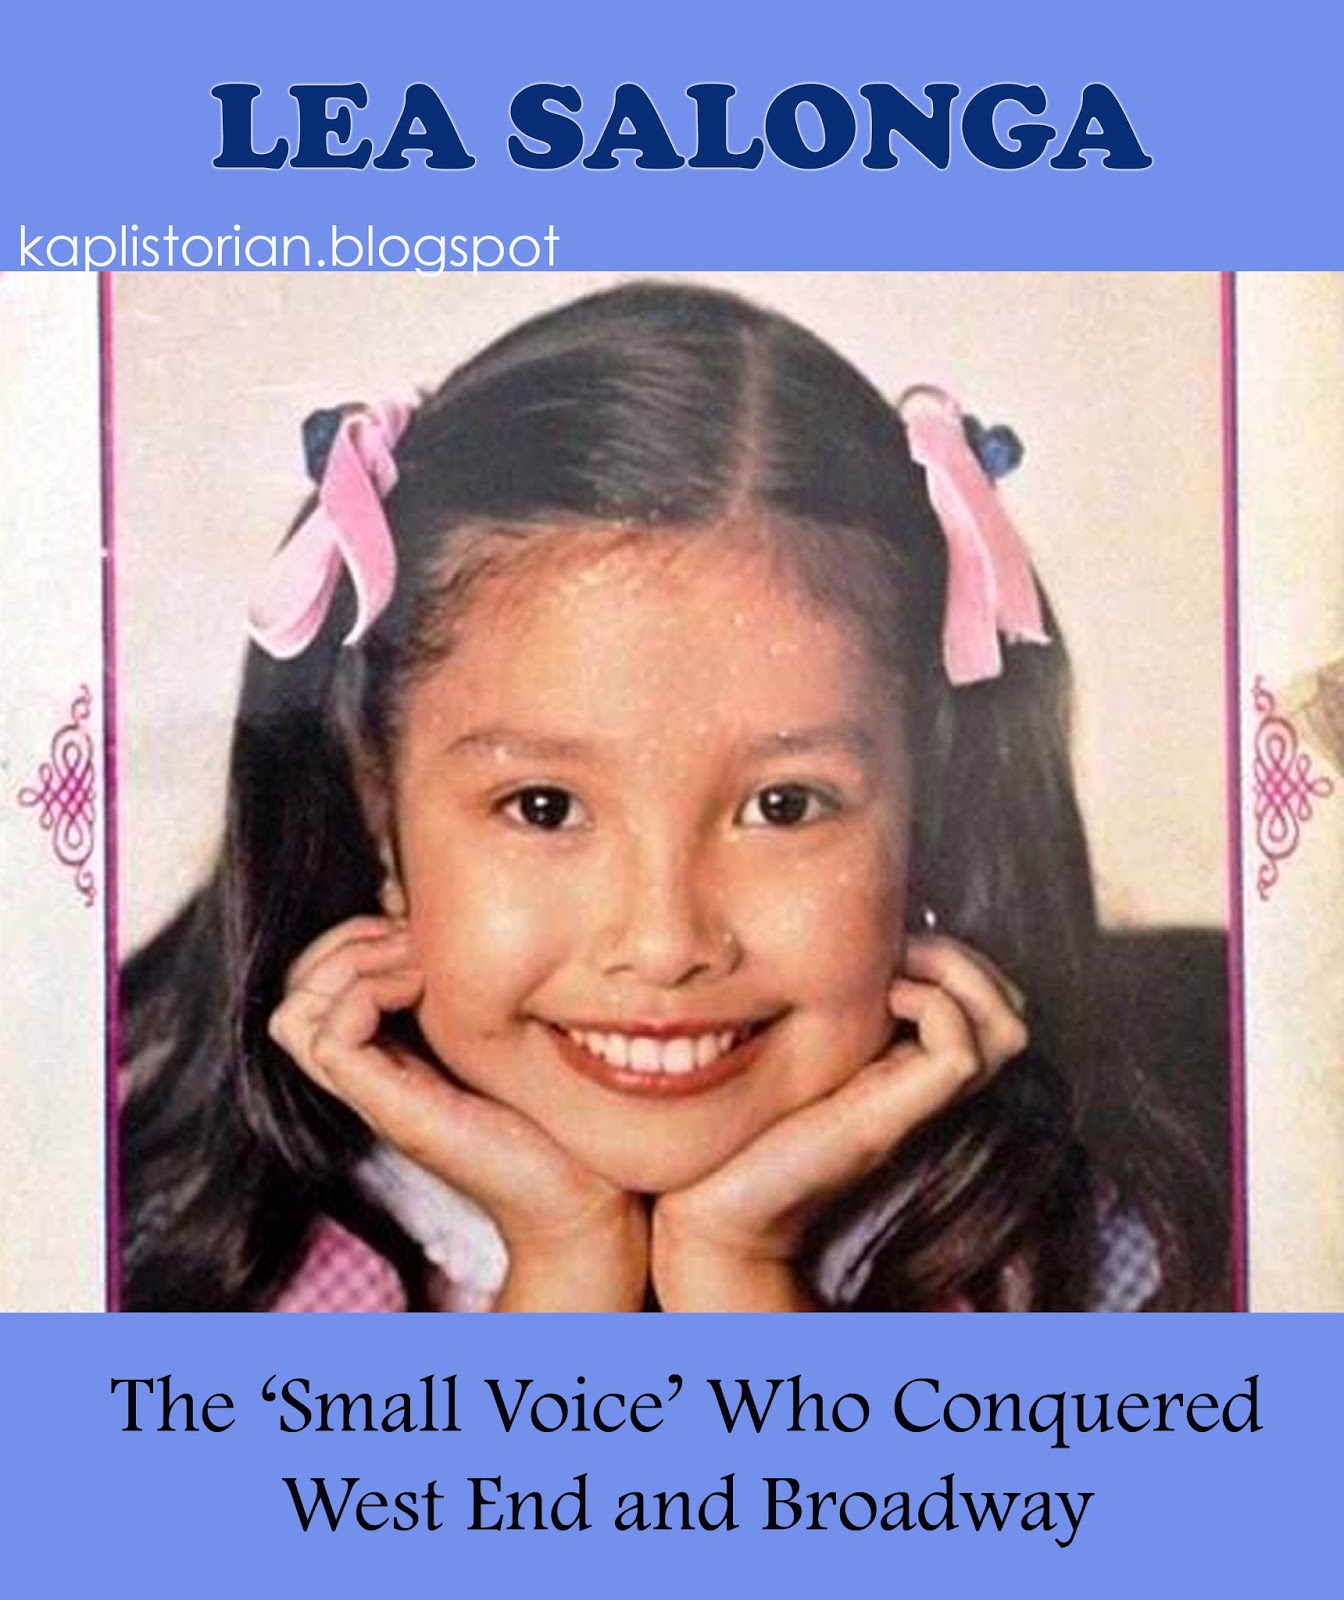 Communication on this topic: Eva Herzigova CZE 	3 	1999?001, ryzza-mae-dizon-b-2005/